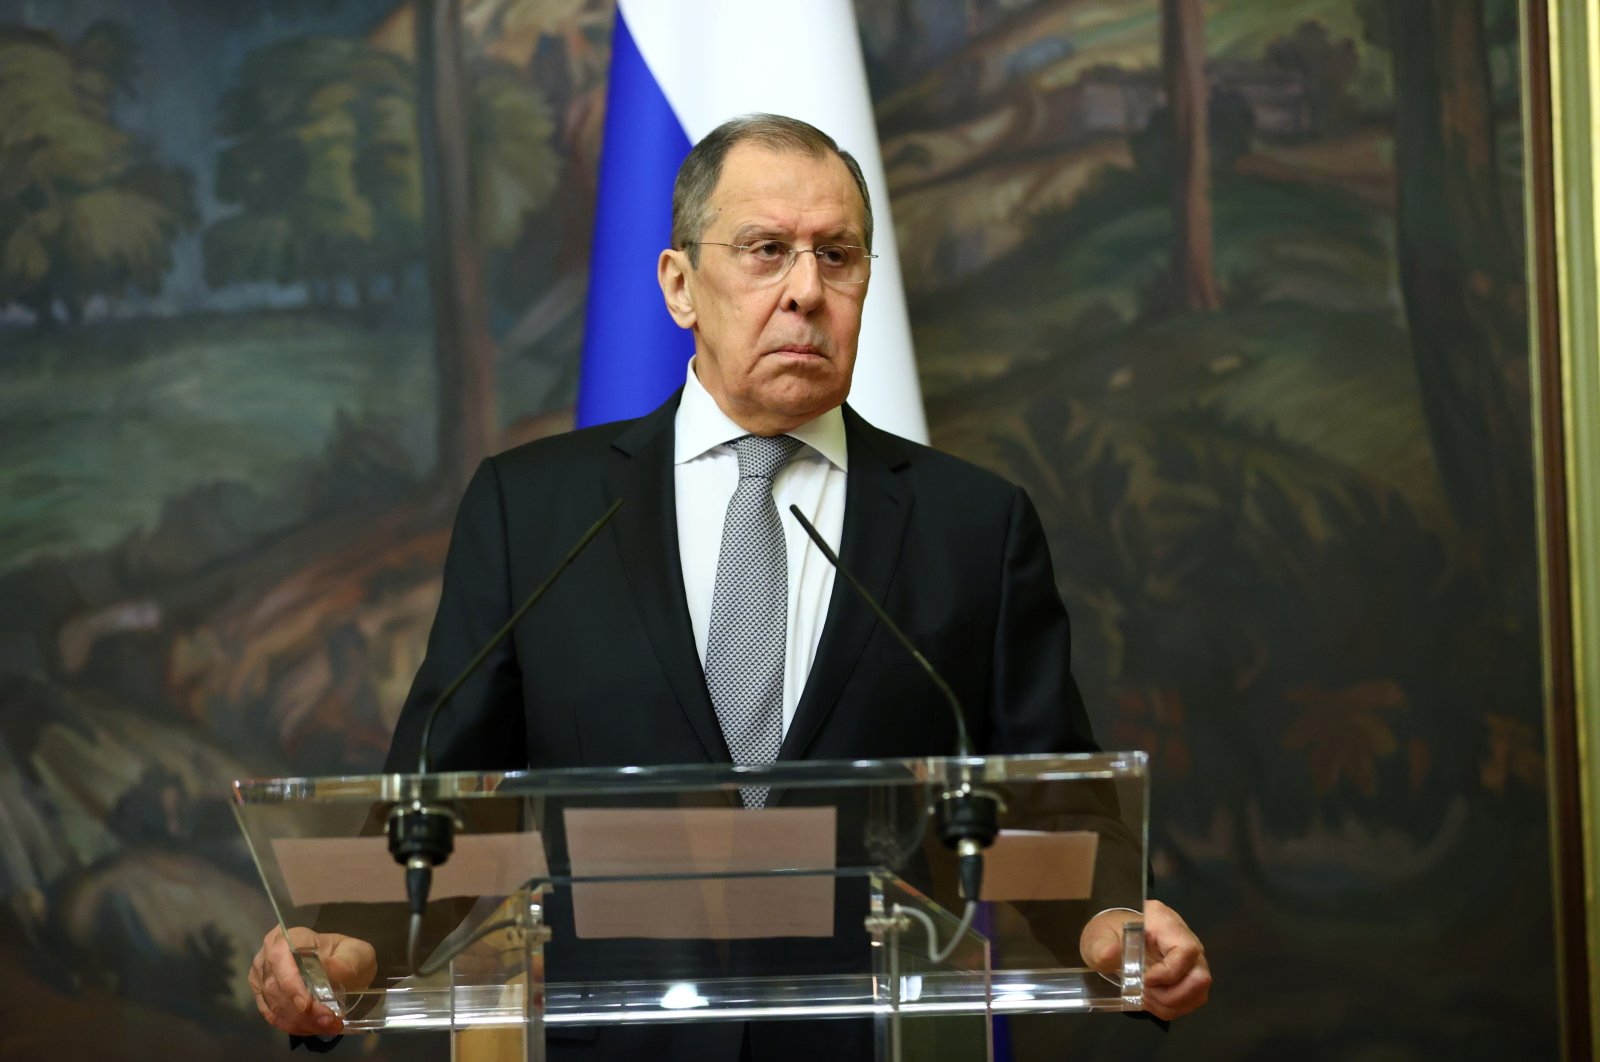 Russian Foreign Minister Sergey Lavrov attends a news conference with his Armenian counterpart Zohrab Mnatsakanyan in Moscow, Russia, Oct. 12, 2020. (Reuters Photo)